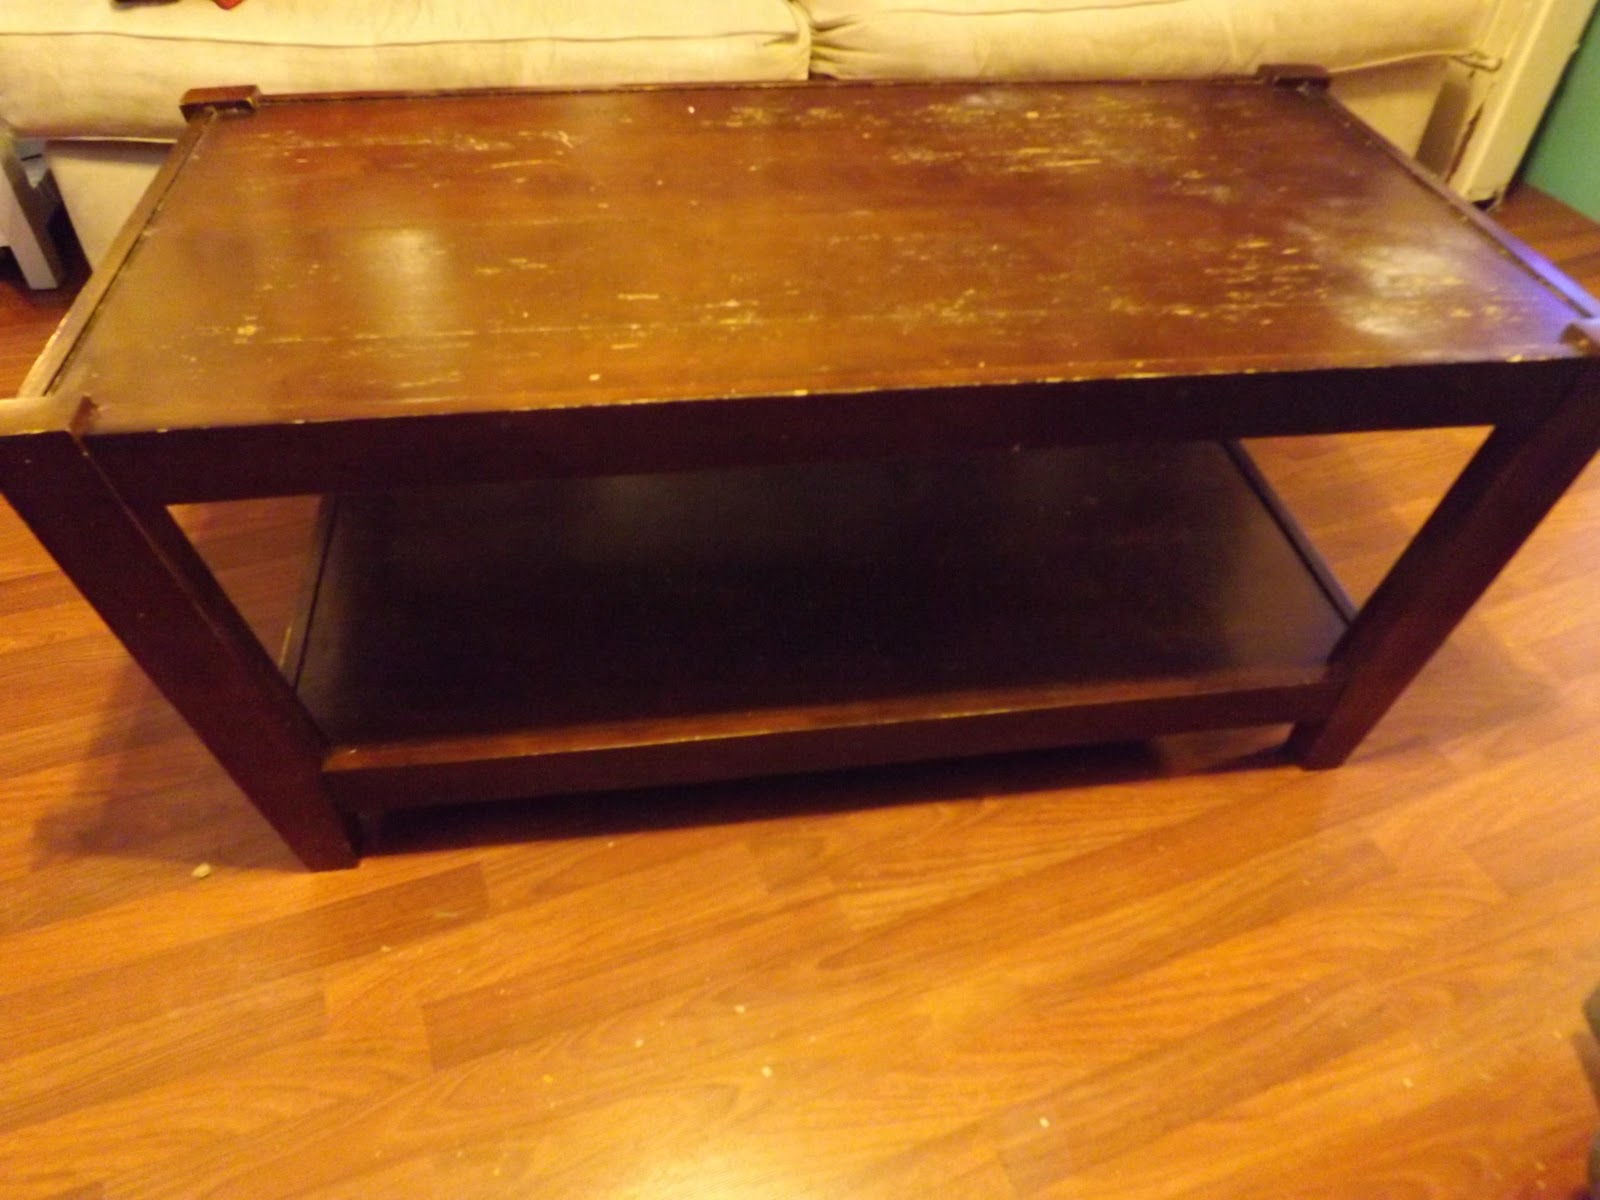 Tedious Tinkering Coffee table converted into an Ottoman